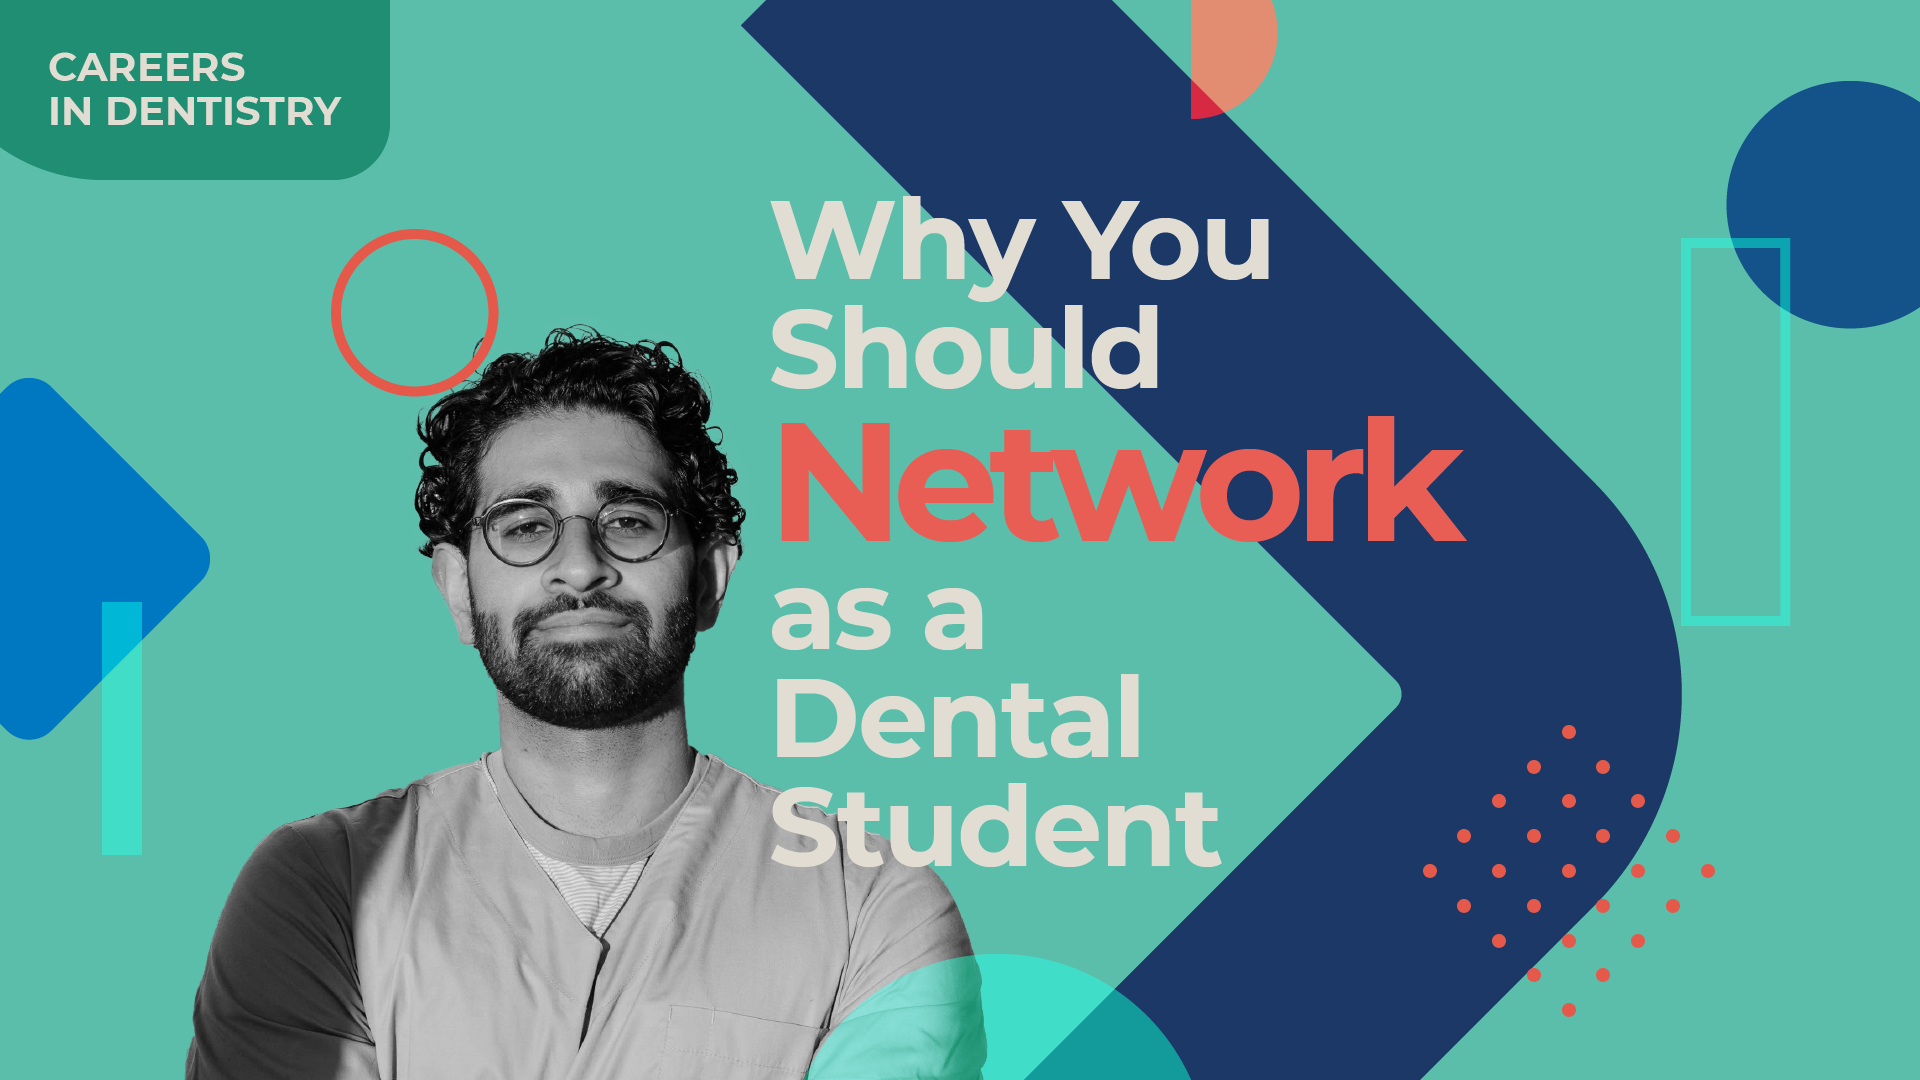 Why you should network as a dental student Careers in Dentistry video with Akhil